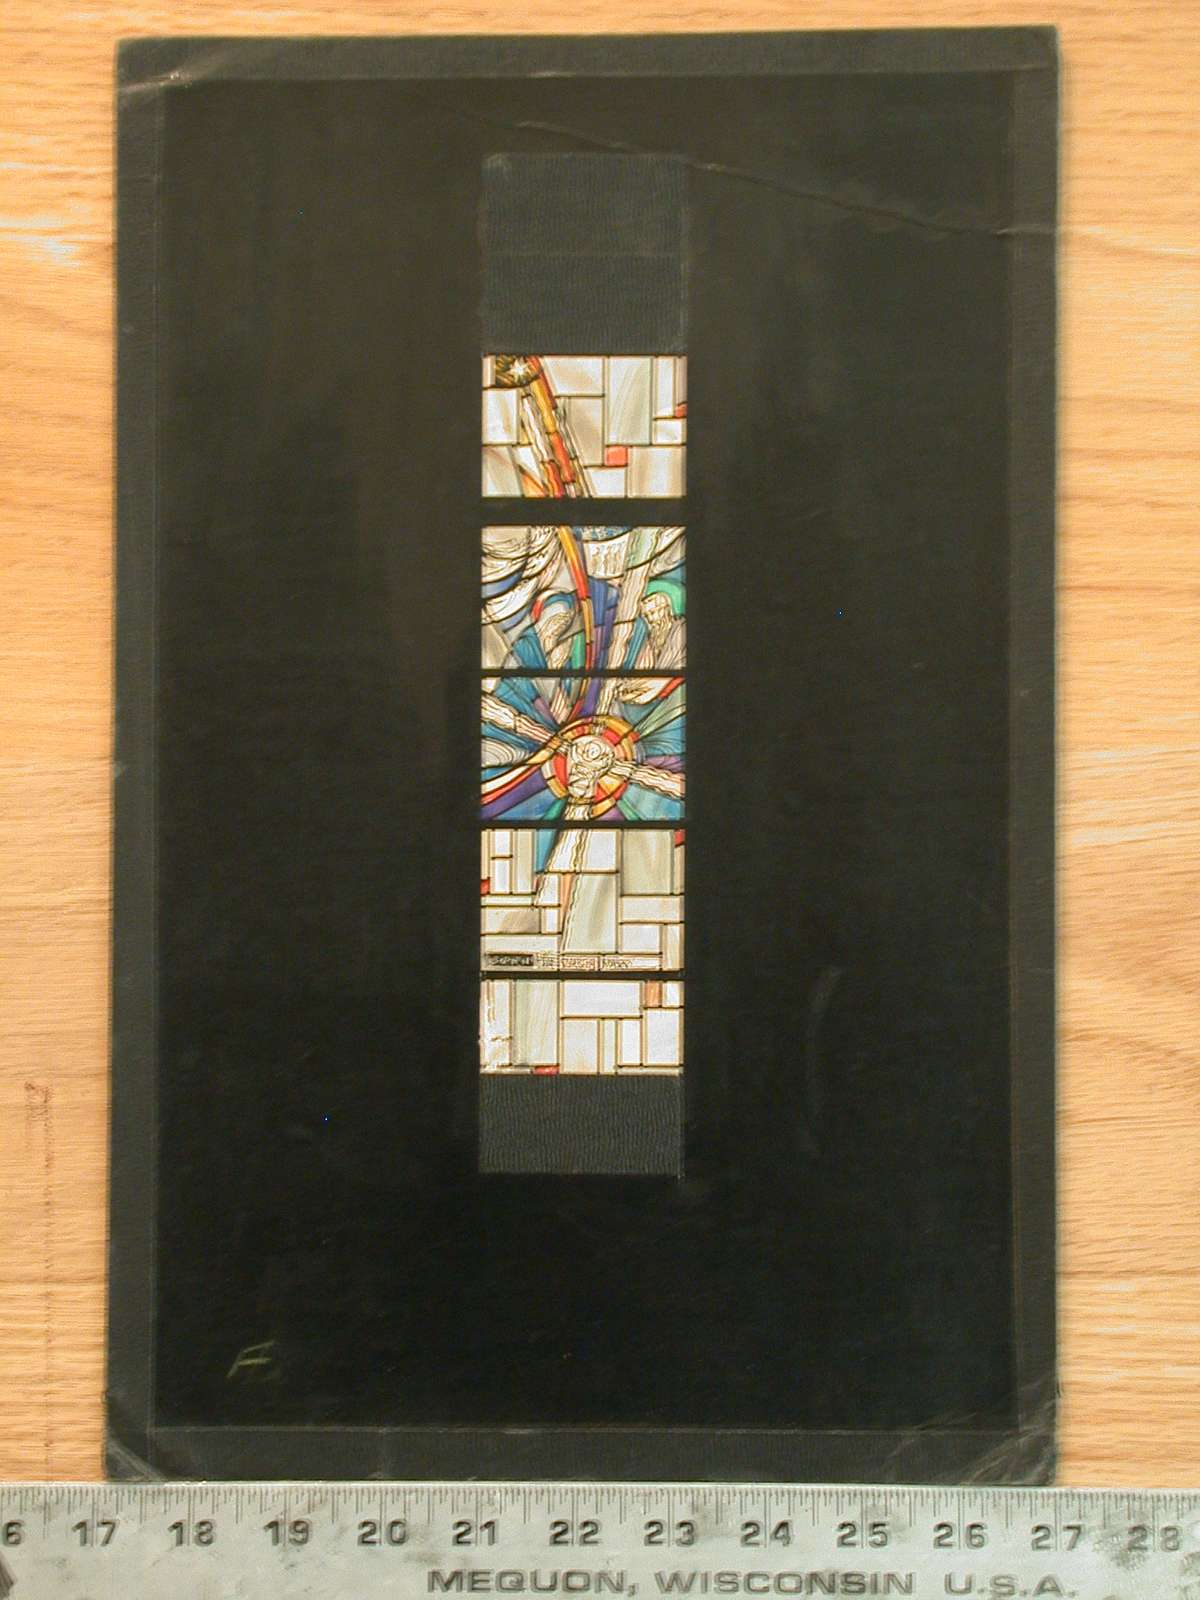 Design drawing for stained glass window for St. Louis Church, with Born of the Virgin Mary and an abstracted Nativity on mid grid